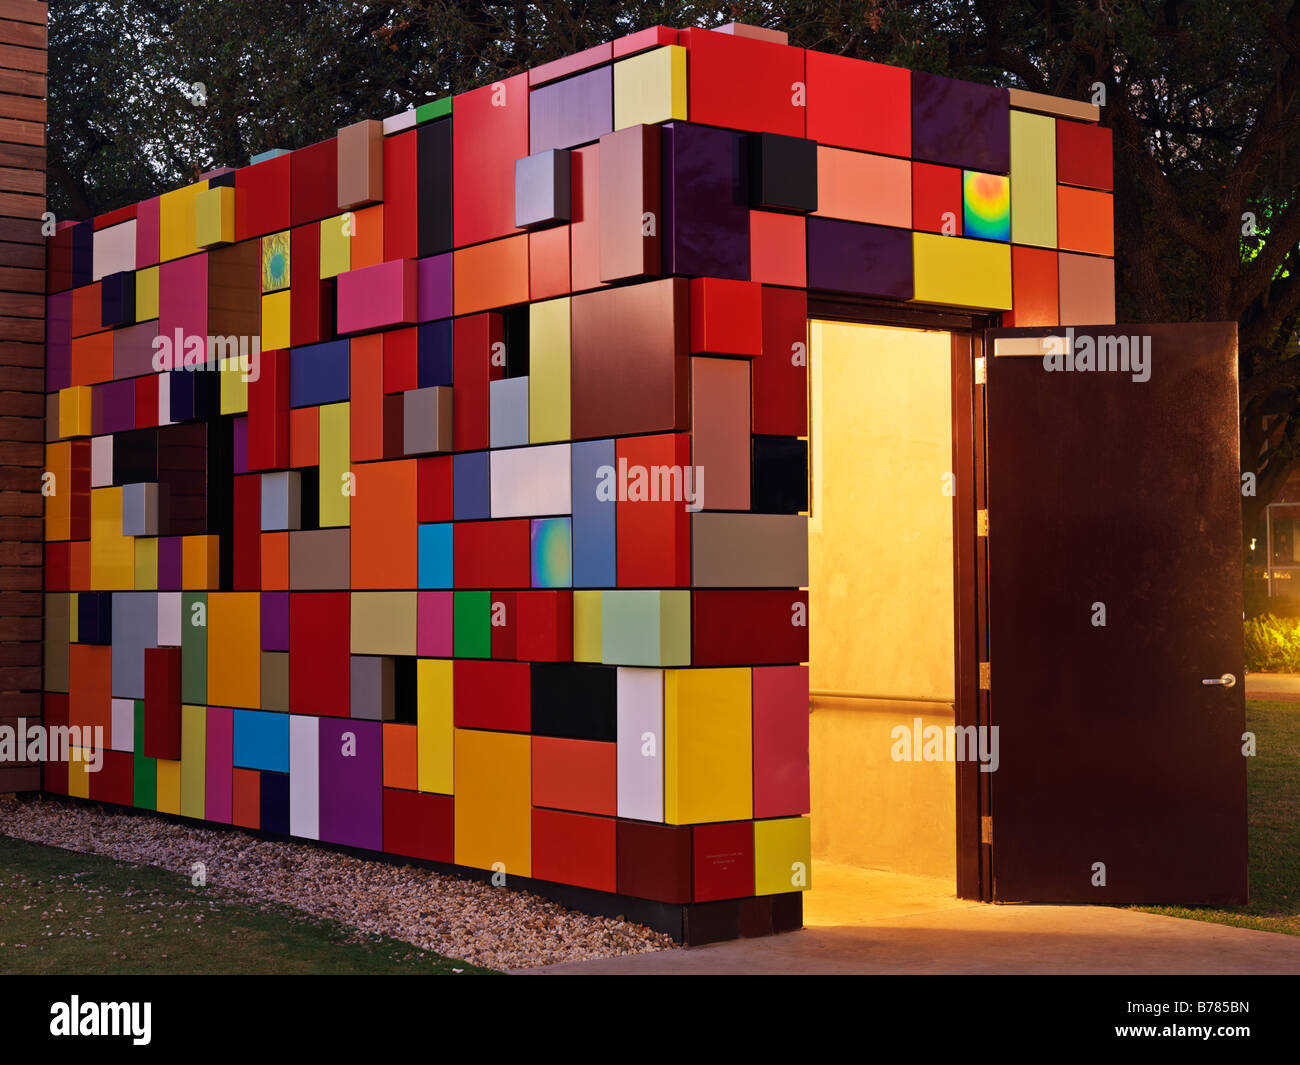 Design A Parking Garage Colorful Multi Colored Building Used As An Entrance For